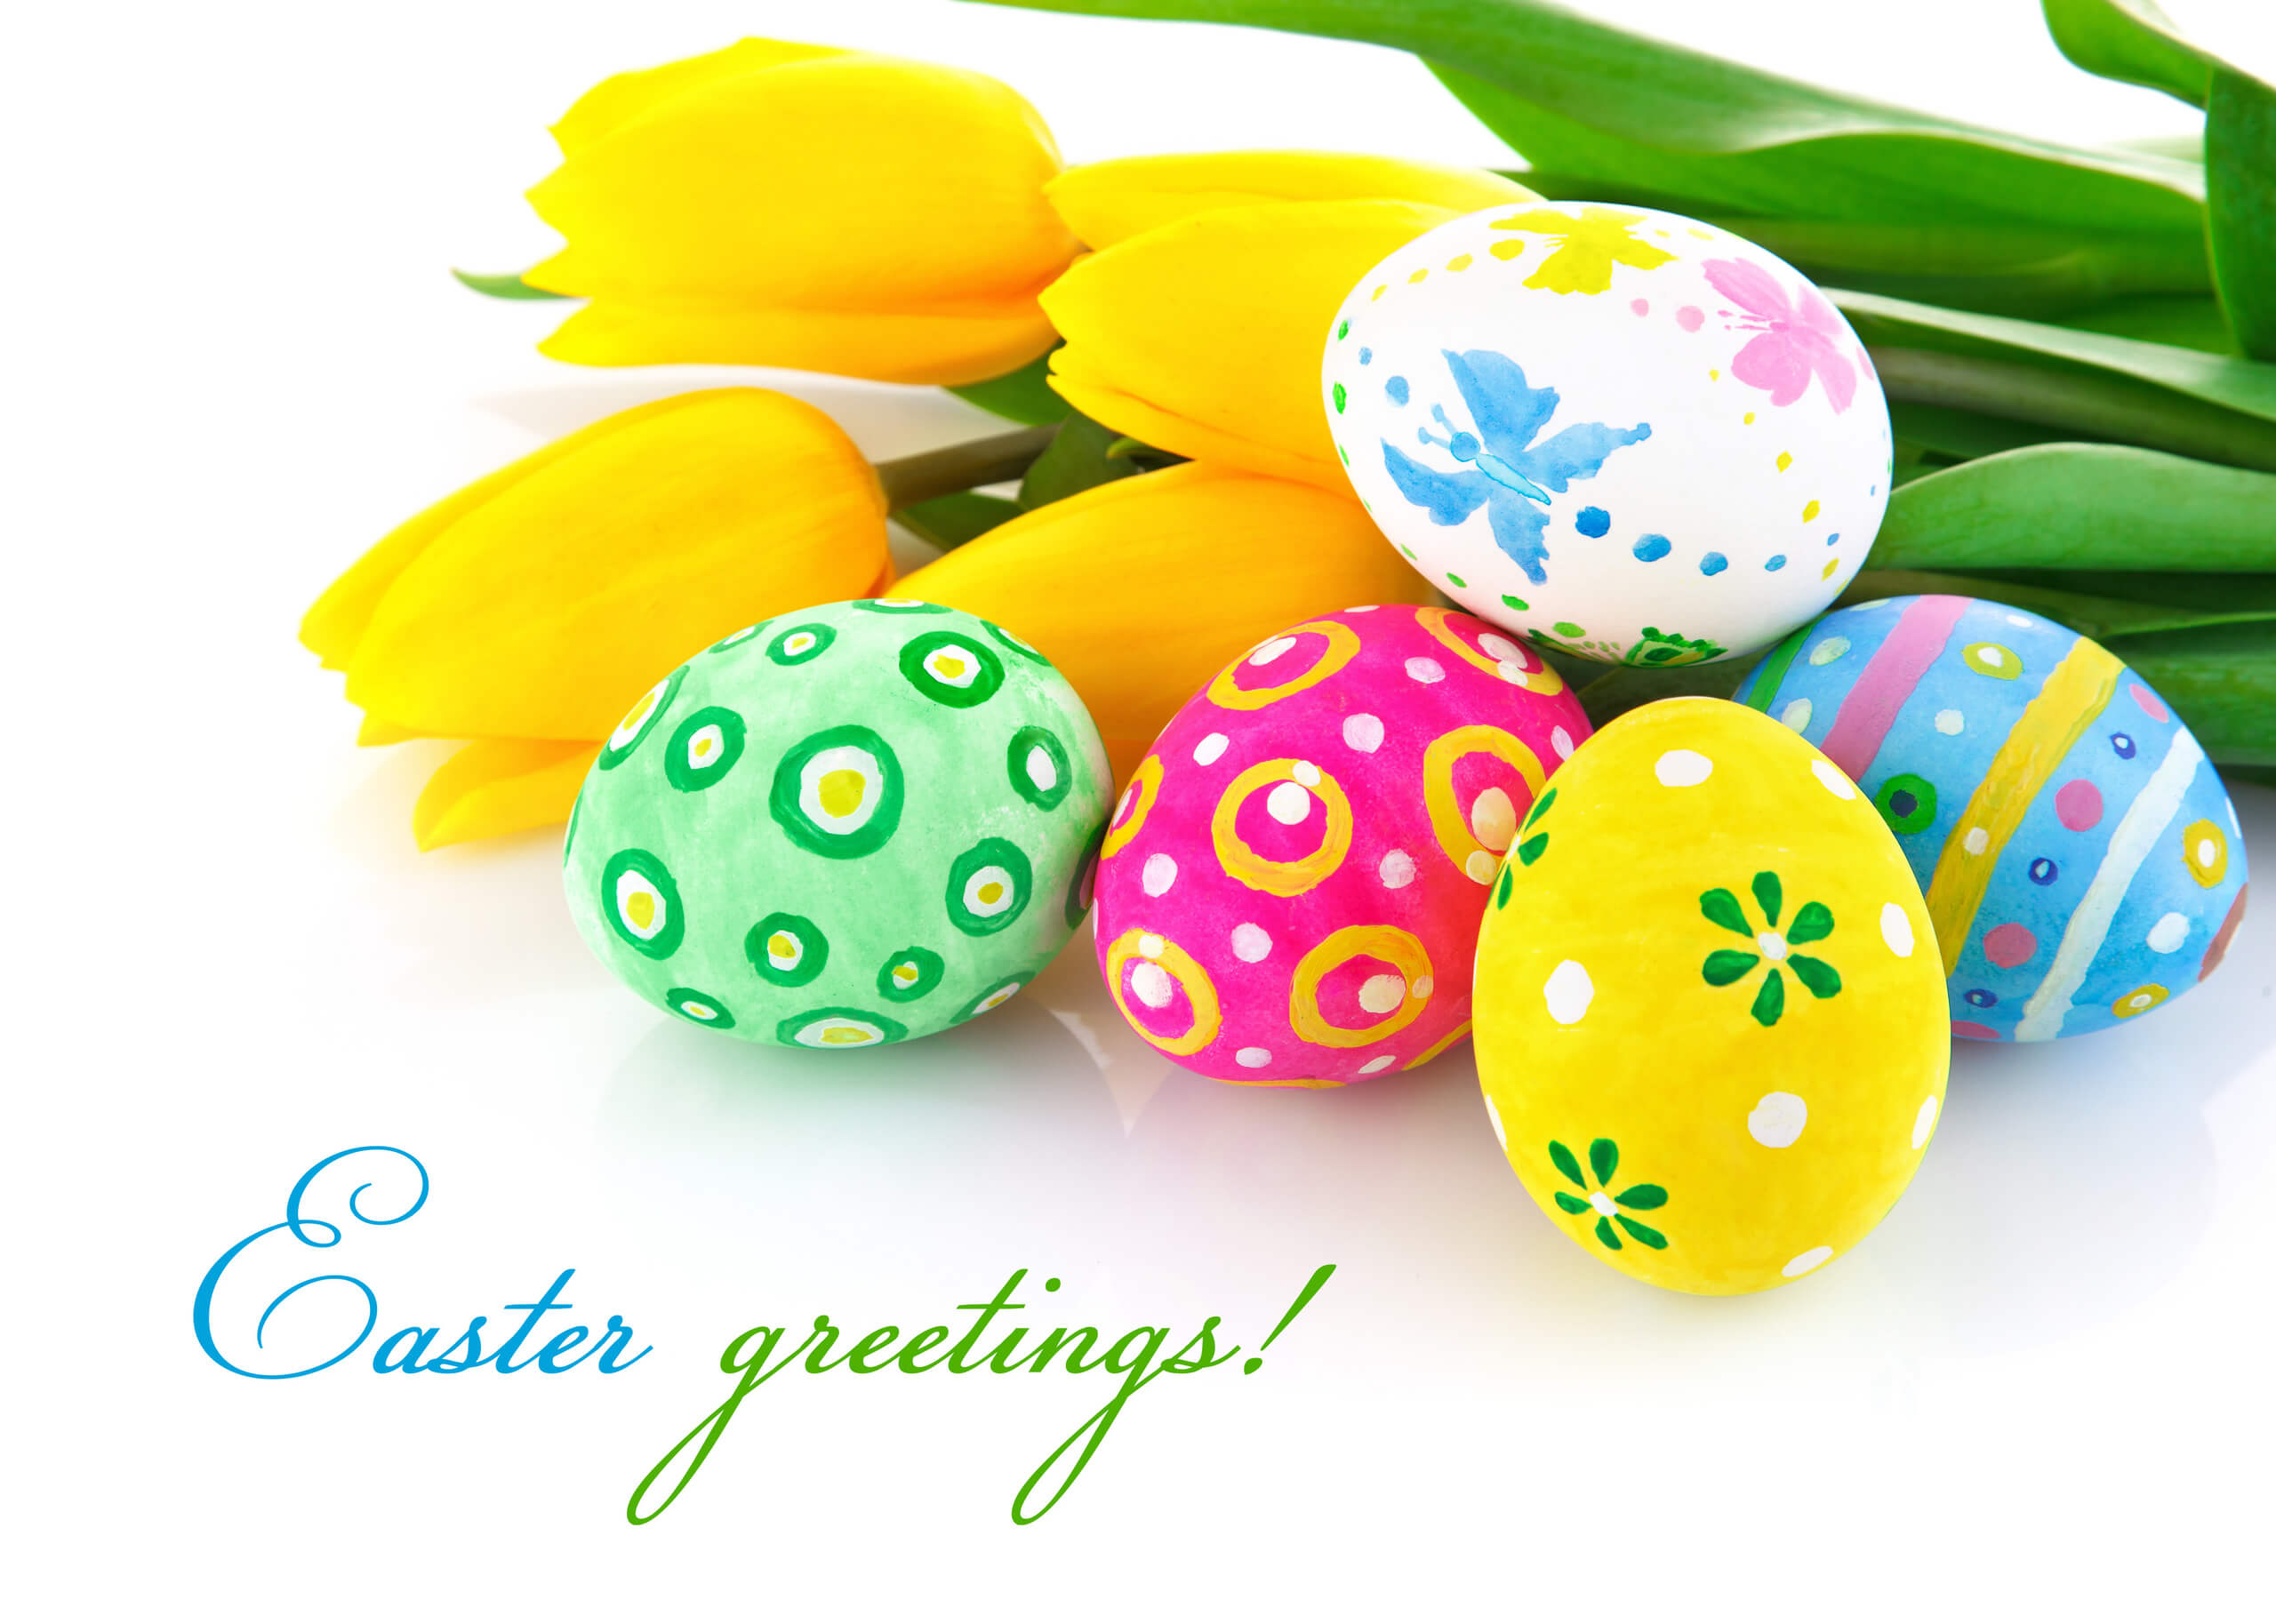 Happy easter greetings hd wallpaper m4hsunfo